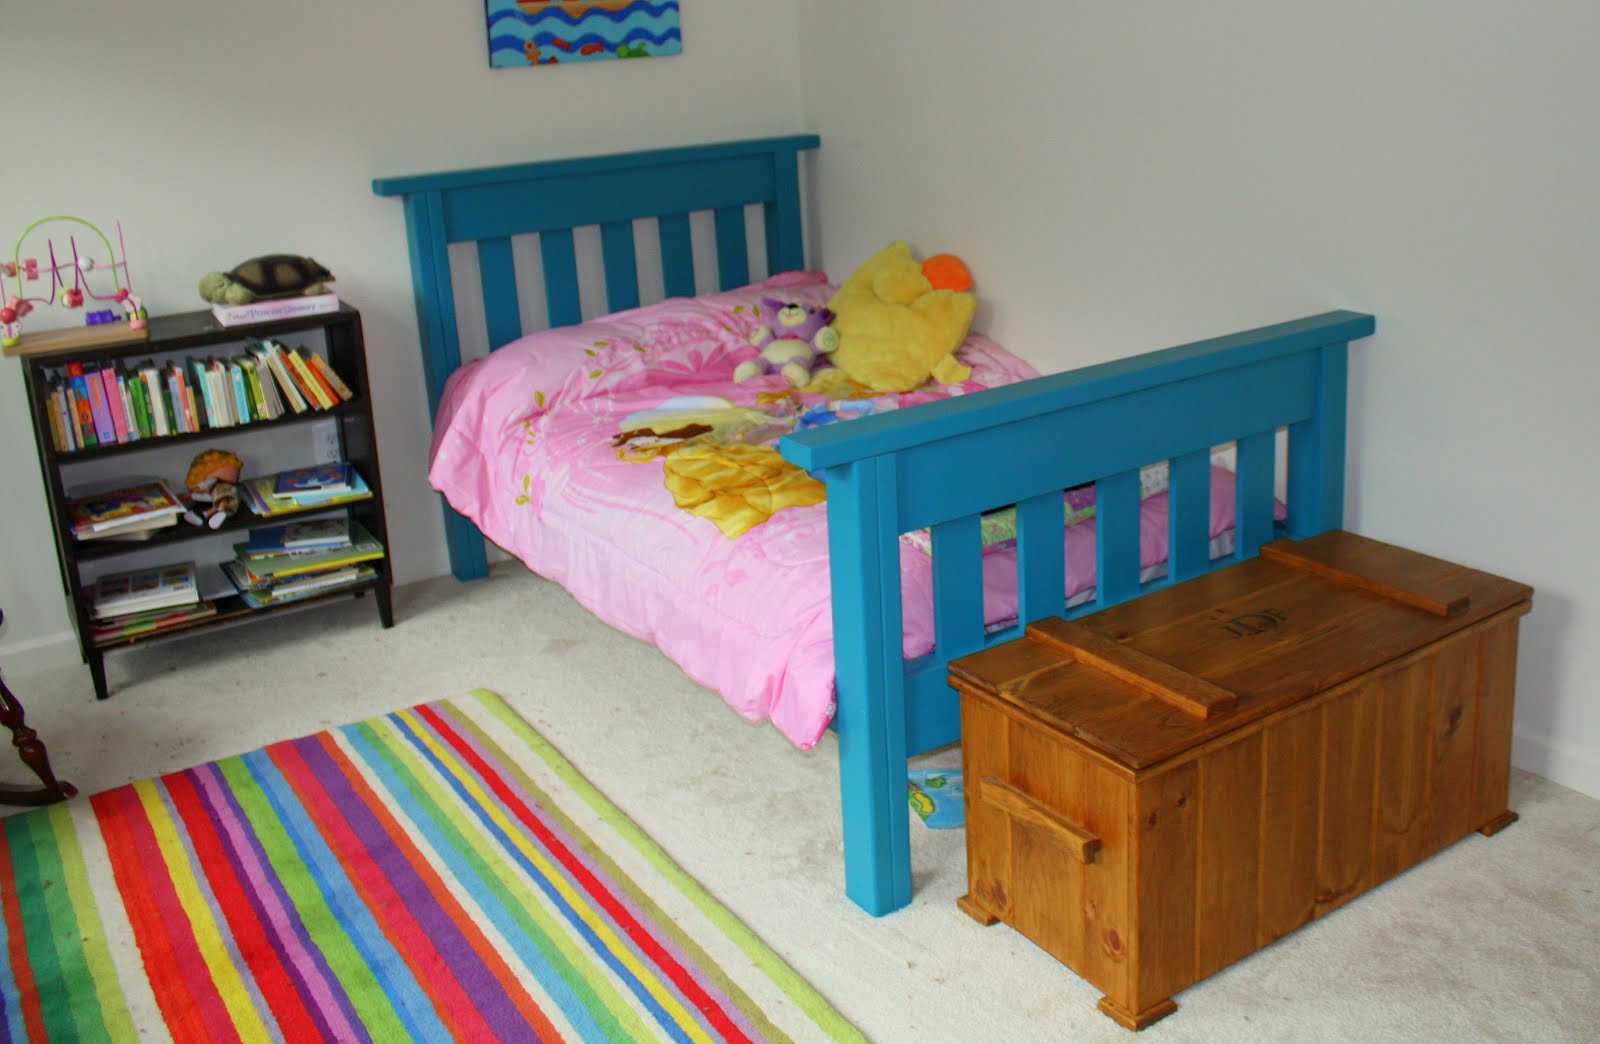 Kids twin bed frame - Twin Bed Frames And Head Boards Are Stupidly Expensive And Or Pieces Of Crap I Wanted A Bed My Kids Could Jump And Play In Without Spending 750 At Pottery